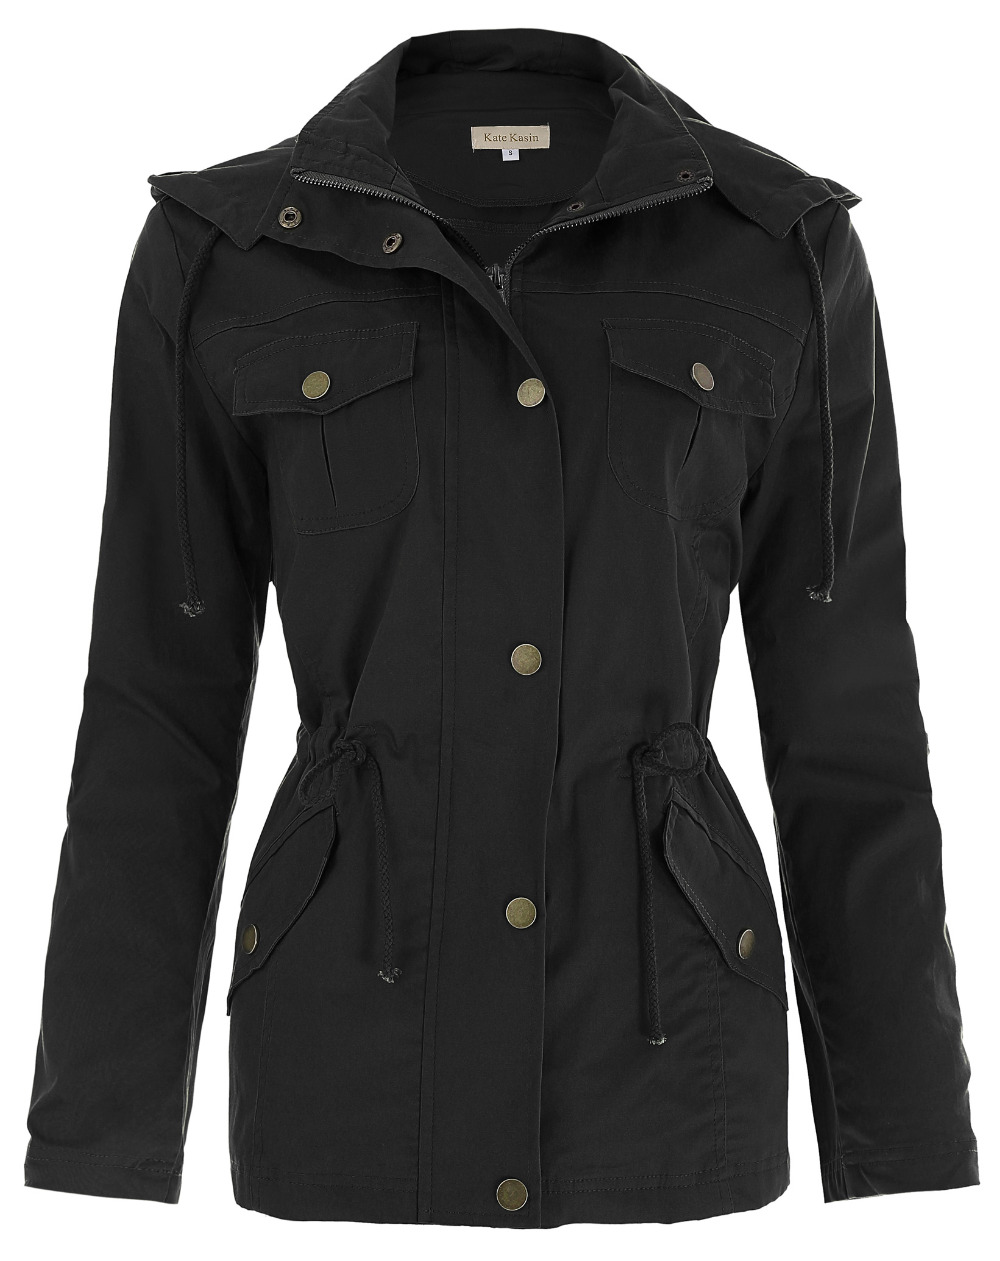 black Autumn Womens Jackets Military Cotton solid color Drawstring Pocket fall Hooded Jacket Coat Outerwear Ladies Overcoat Tops